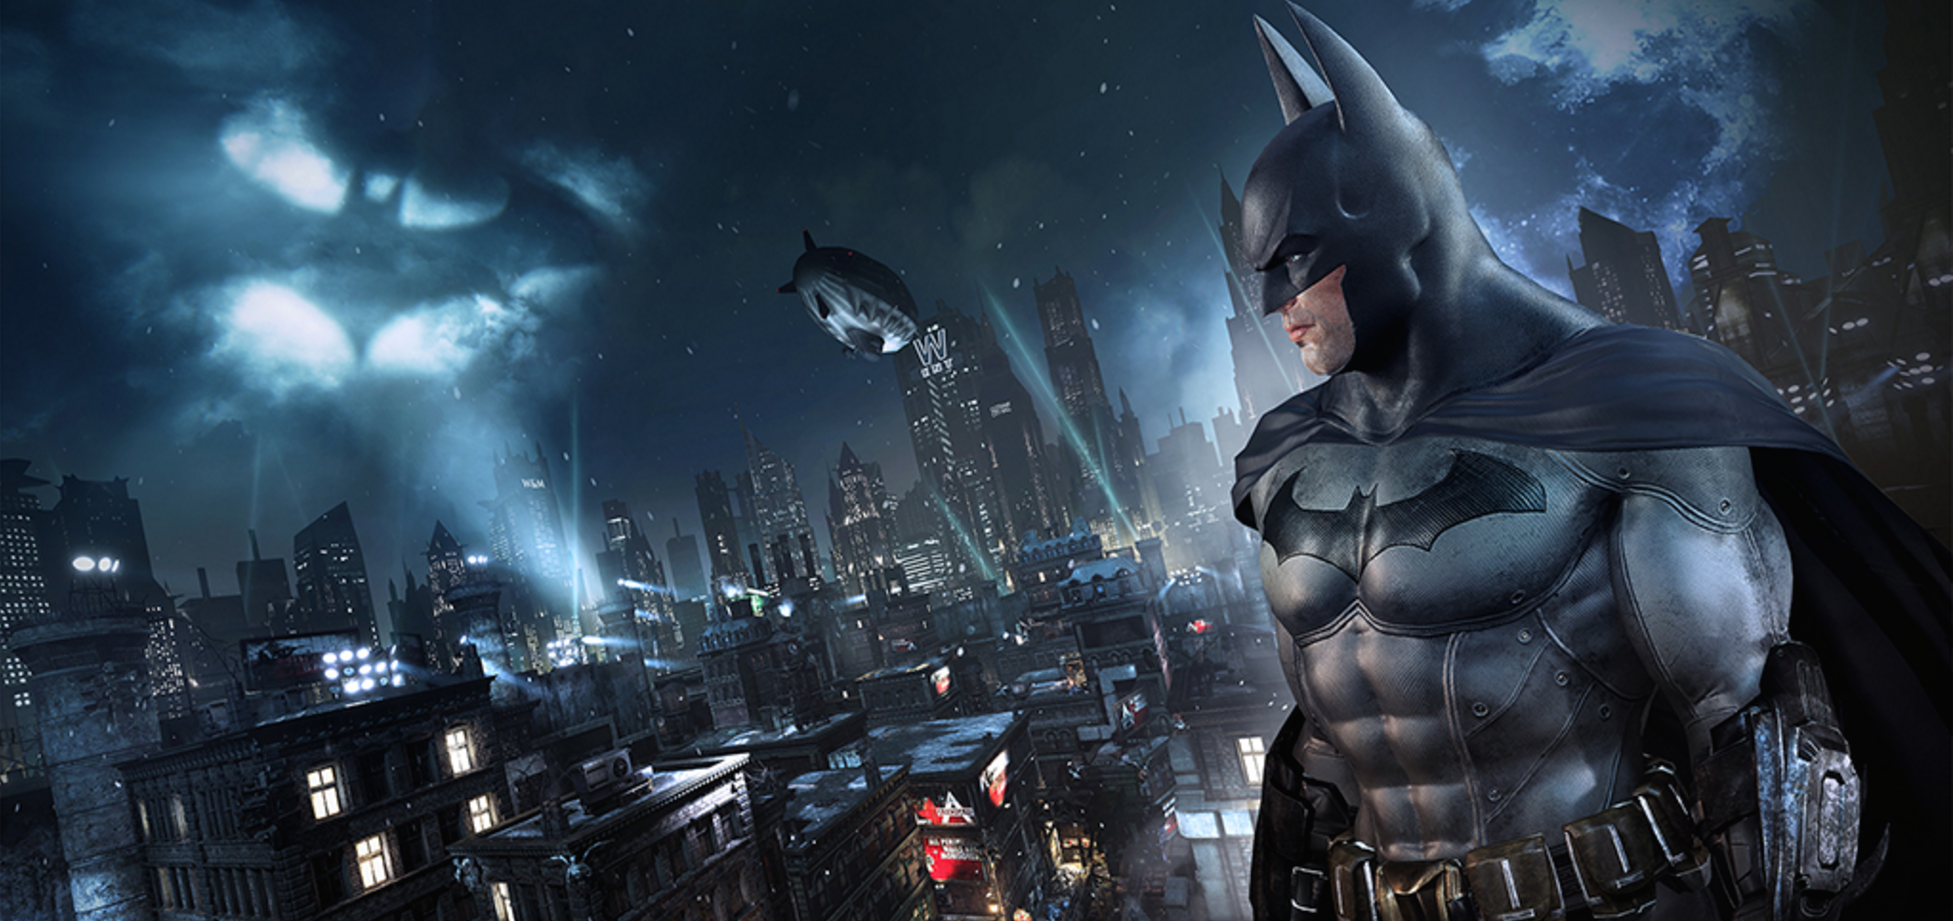 Check Out The First Trailer For BATMAN: RETURN TO ARKHAM